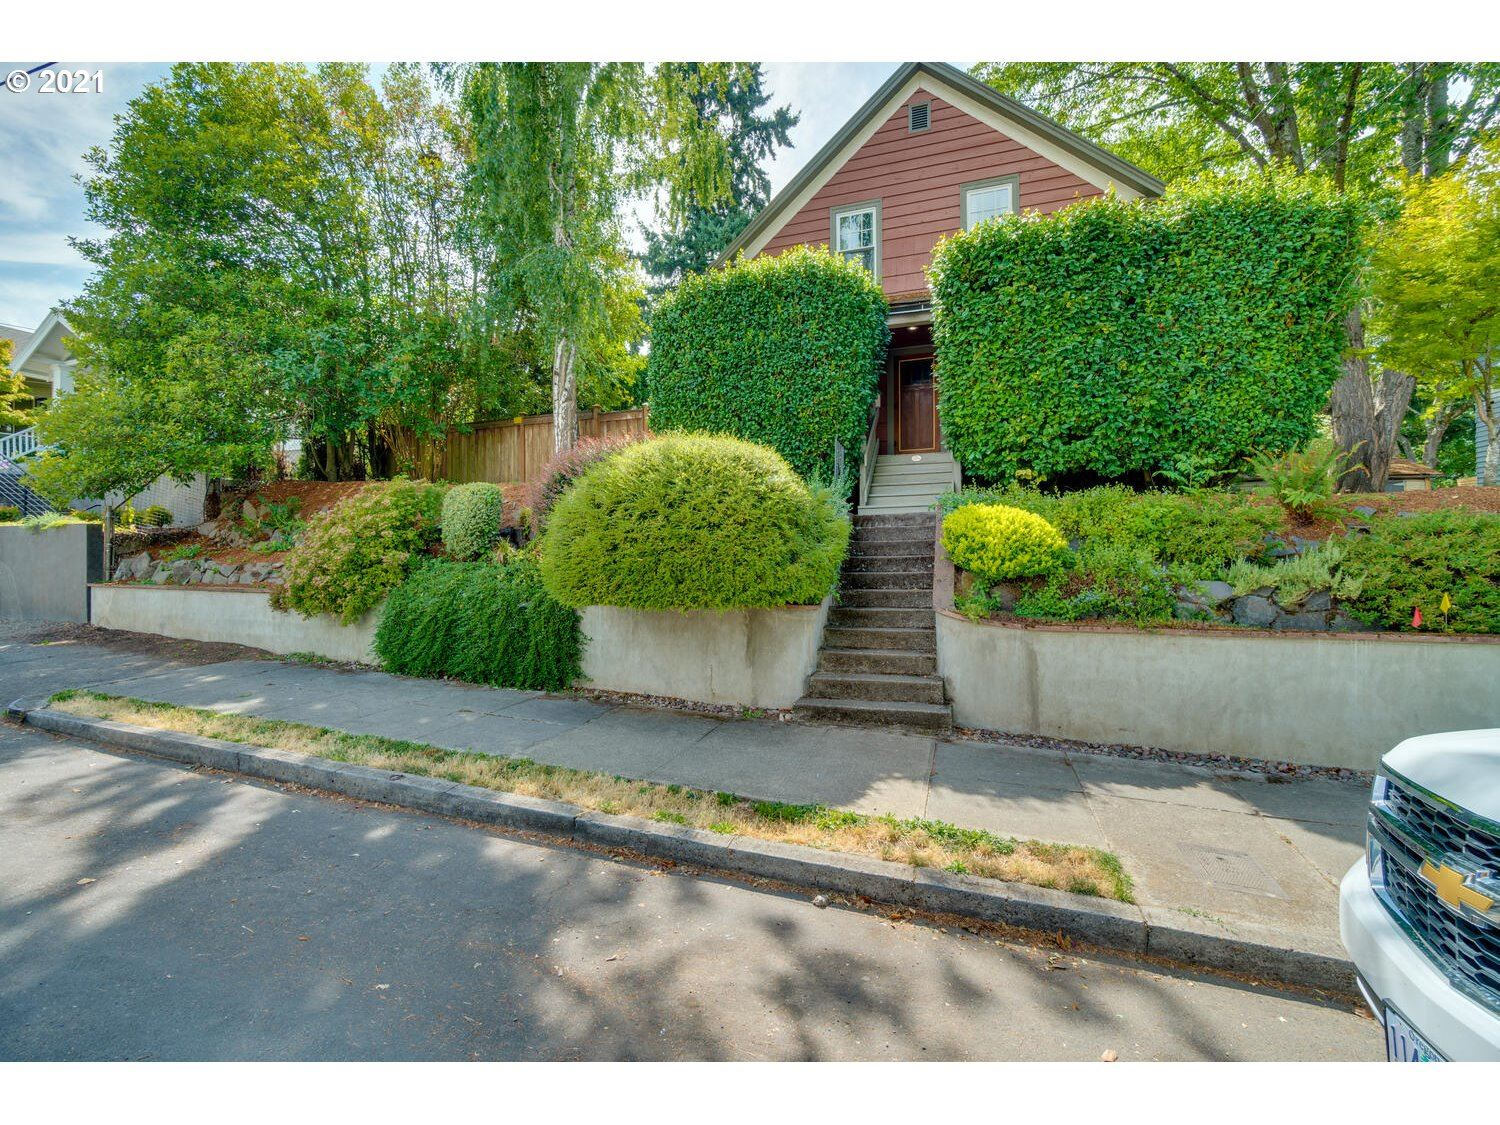 2805 SE 34TH AVE, Portland, OR 97202 - MLS#: 21284144